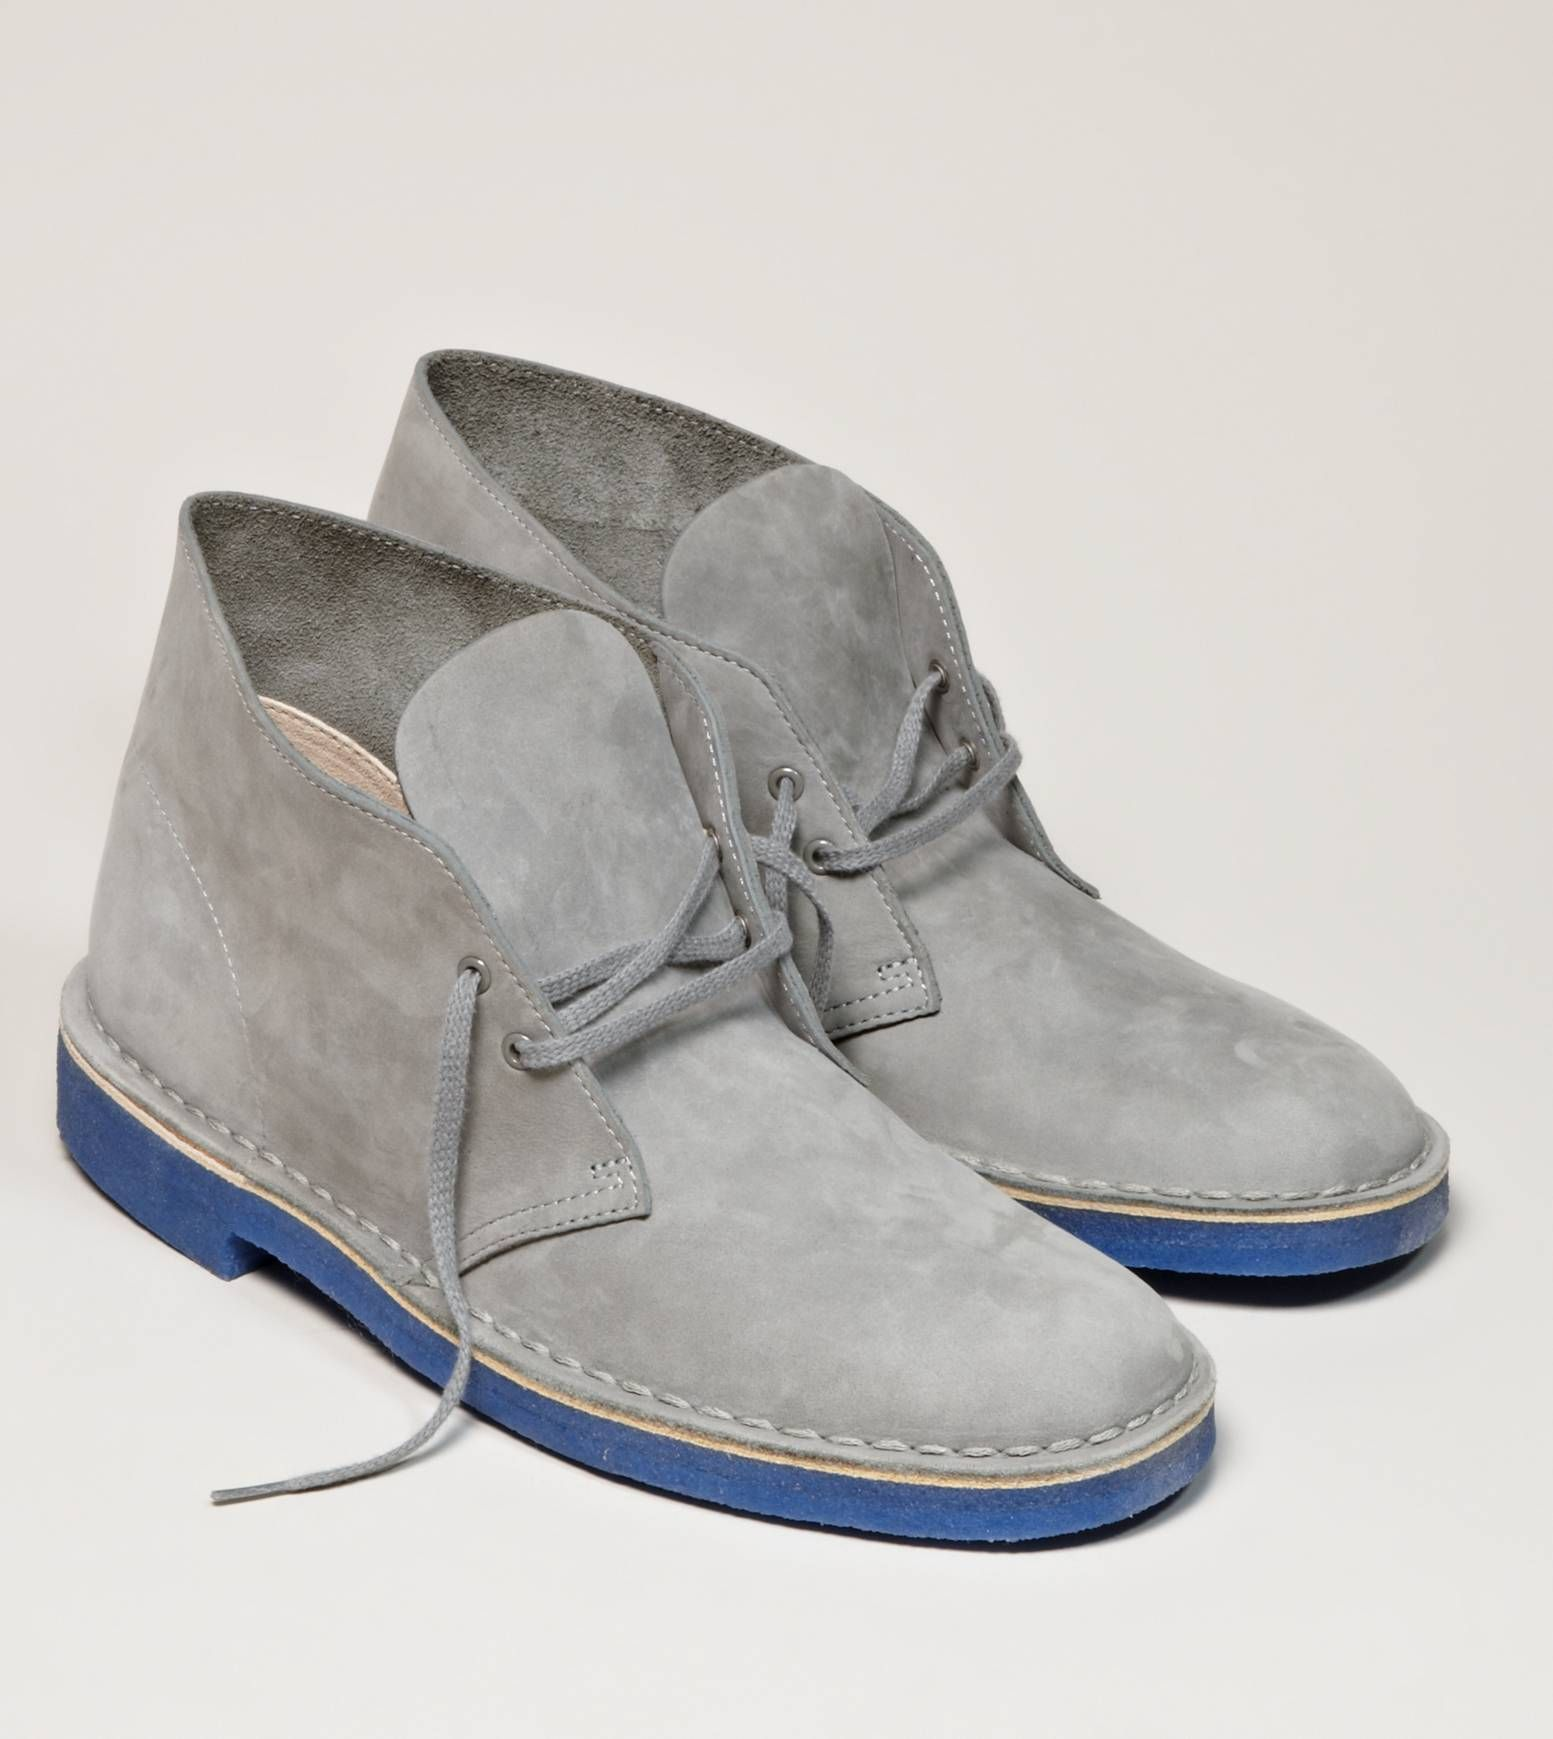 a6cd9f35bf5 Contrast Sole, Clark's $120 | For Him | Shoes, Shoes with jeans ...